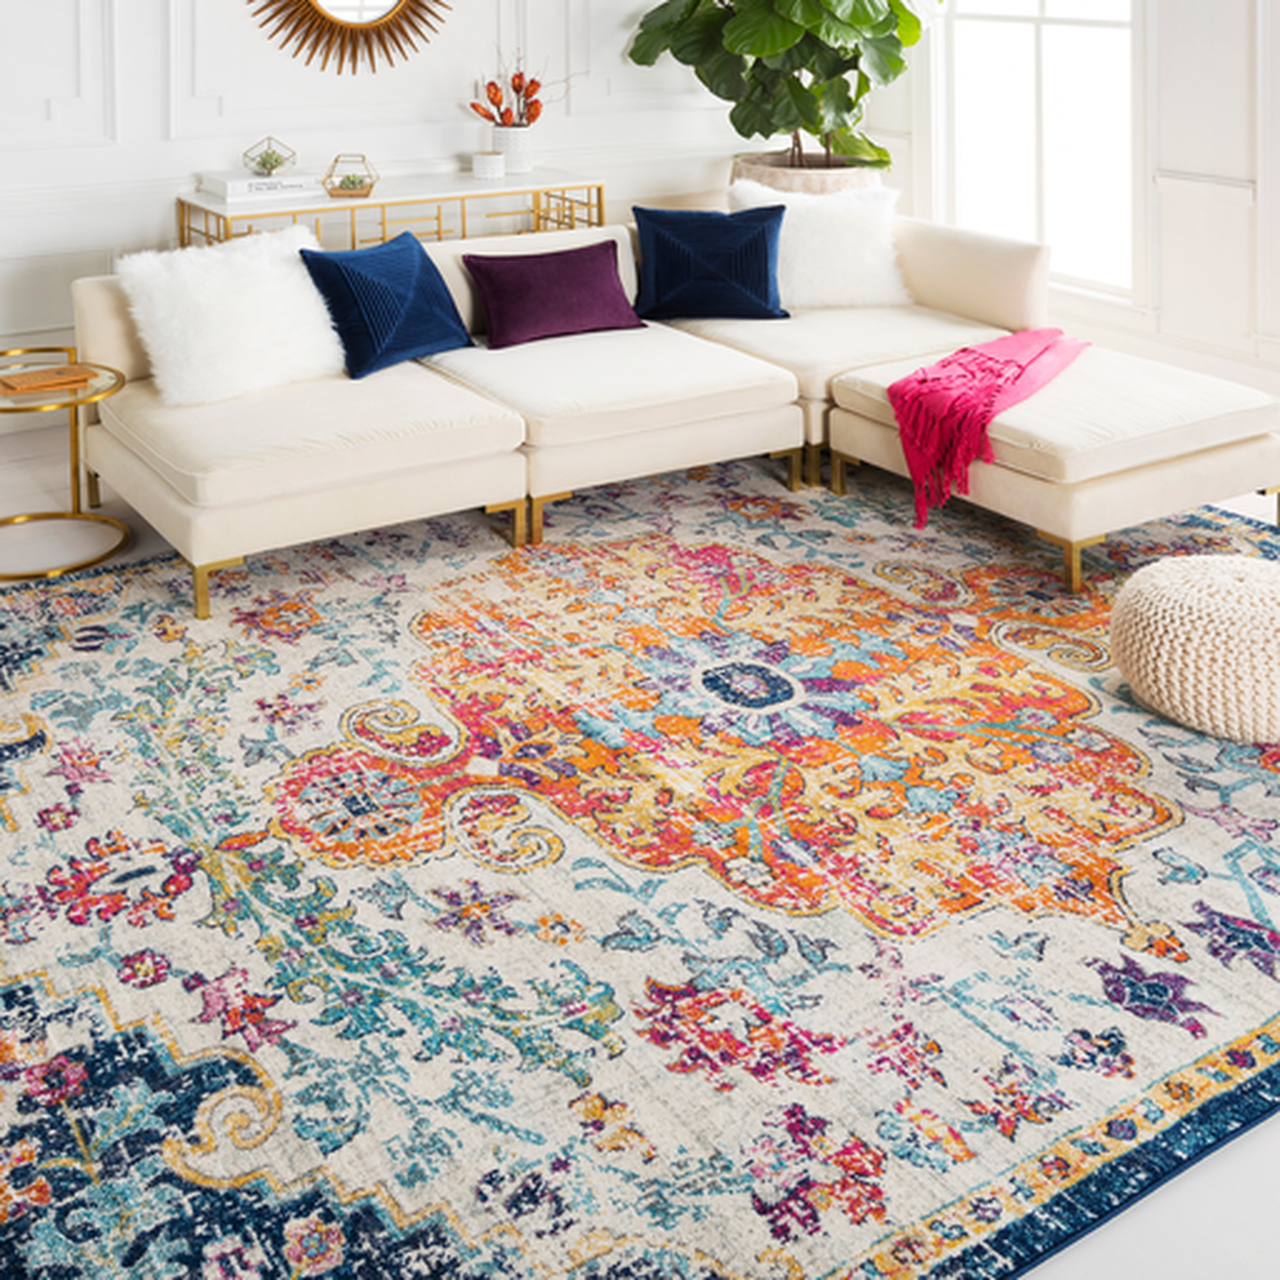 Colorful area rug under a white couch